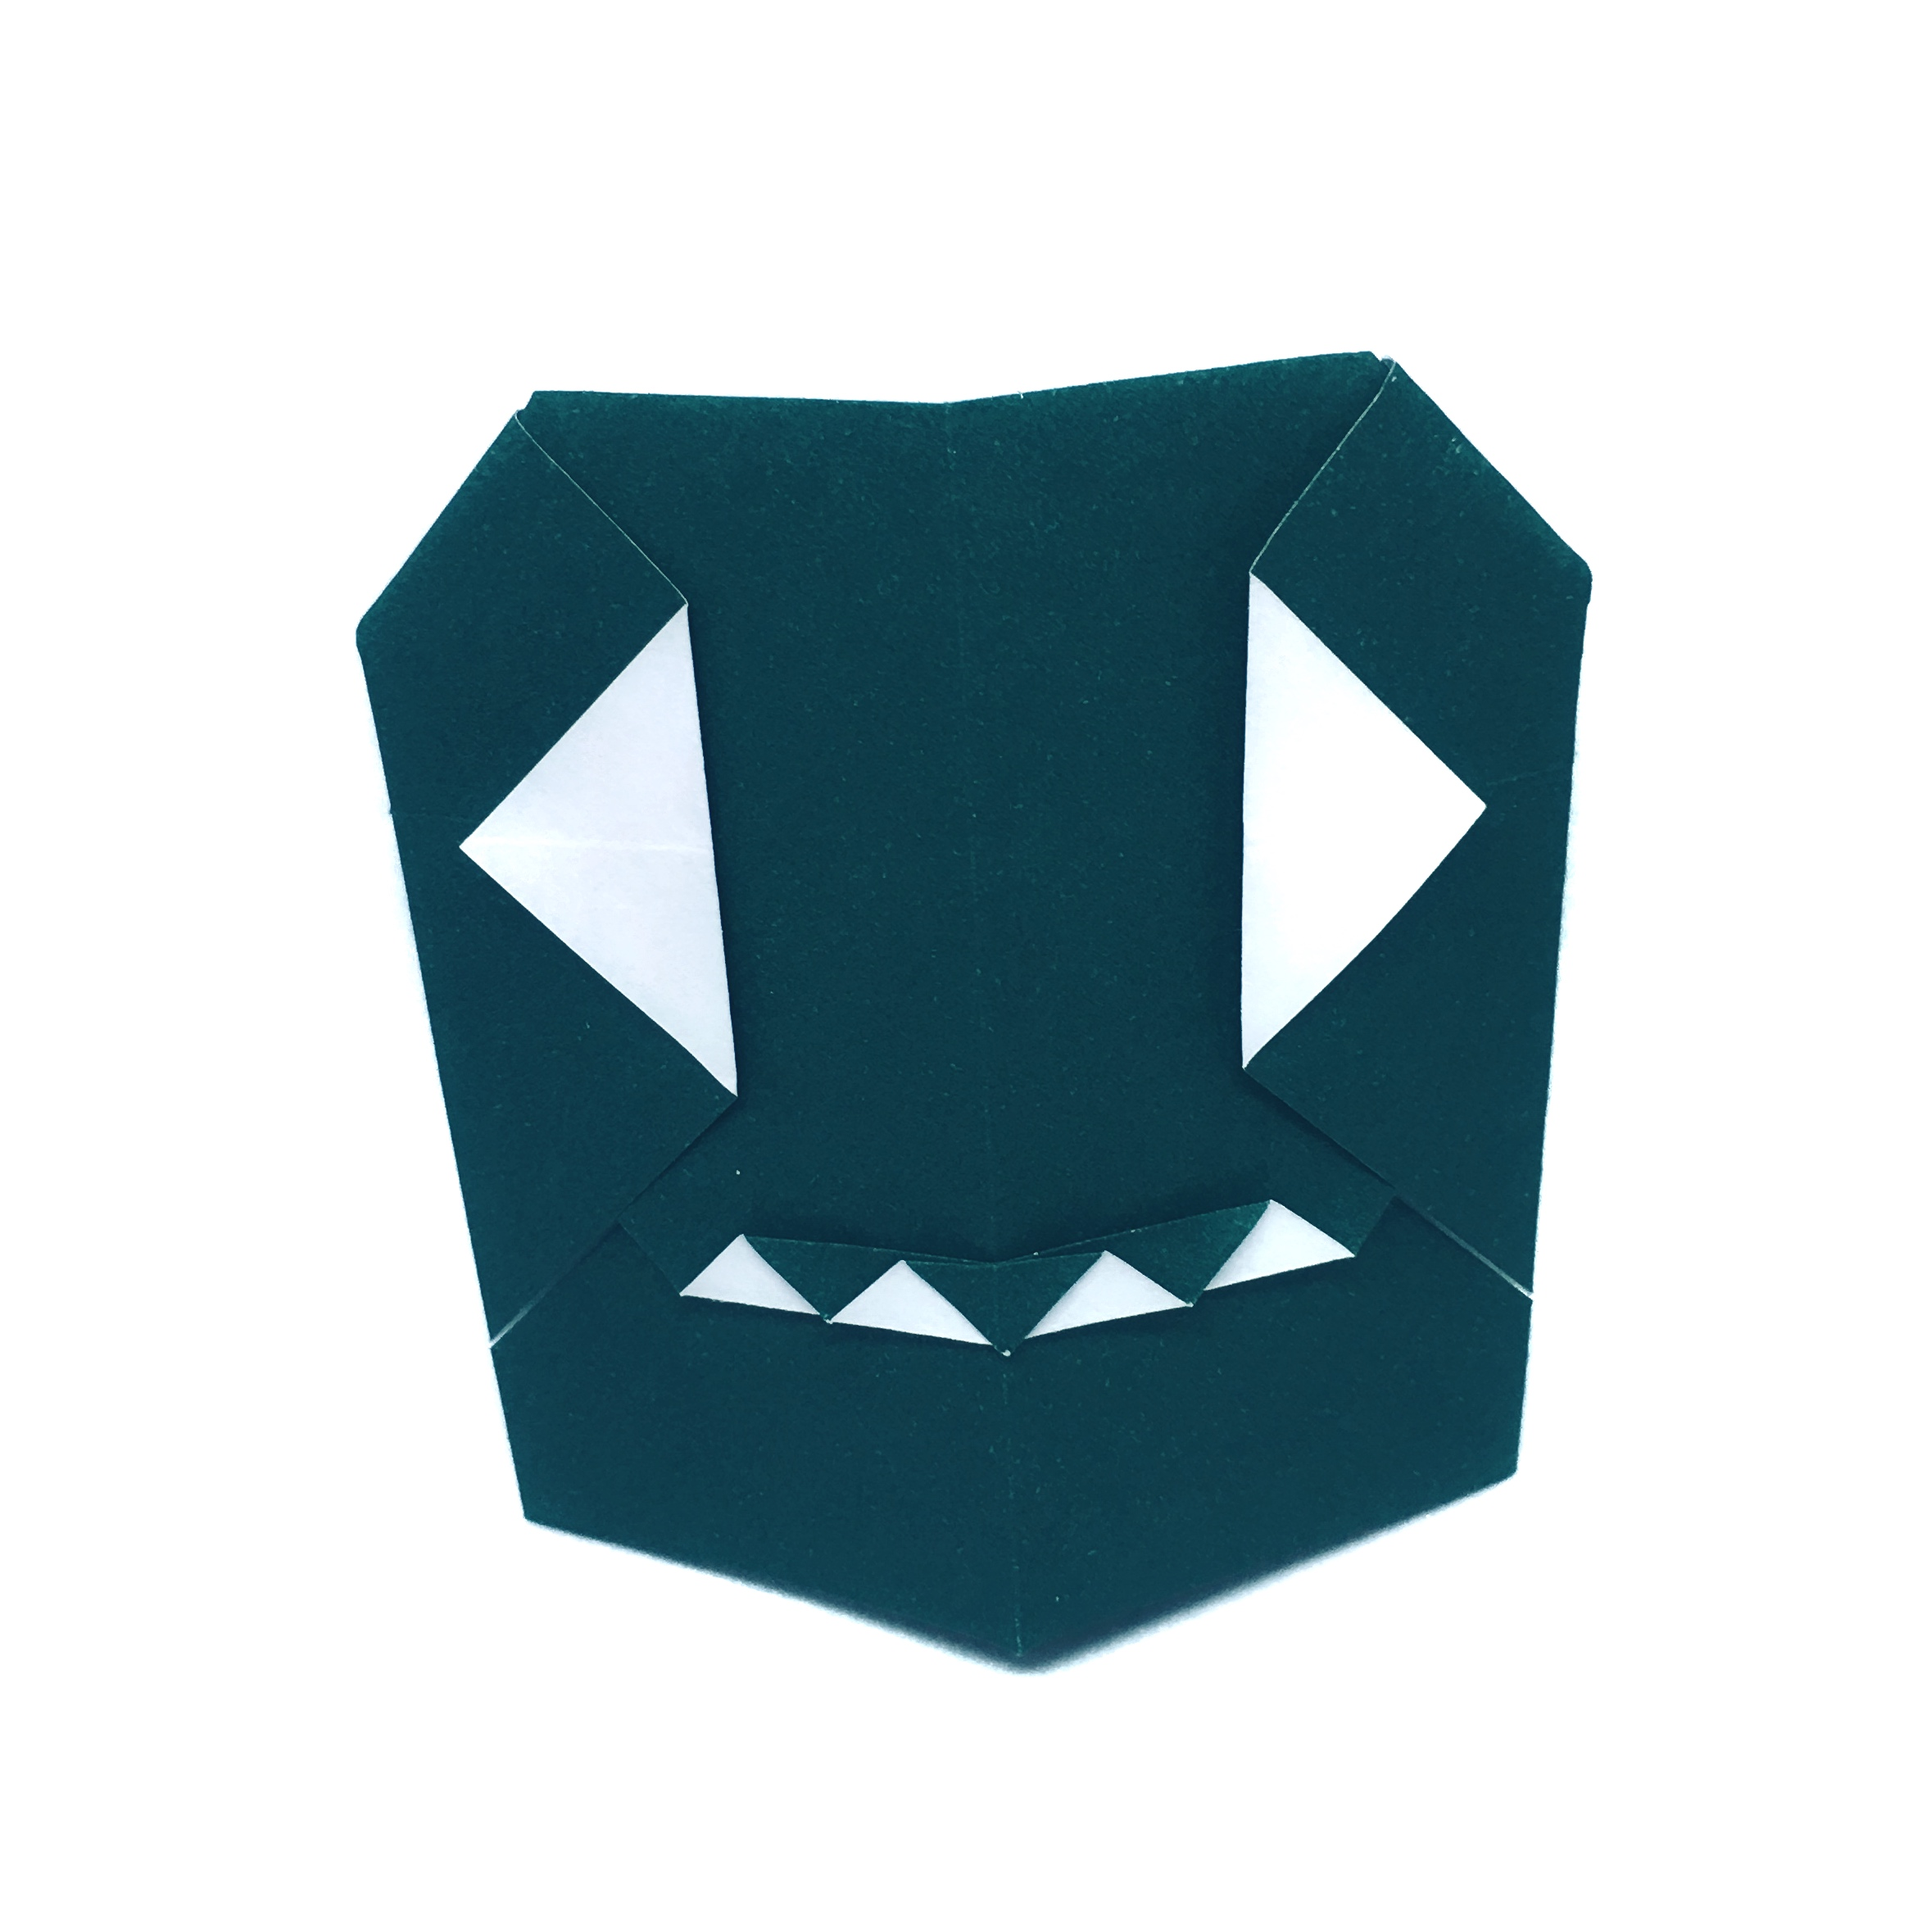 Origami For Halloween And A Free Competition Expressions Diagram Mr Ghost By Stephane Gigandet